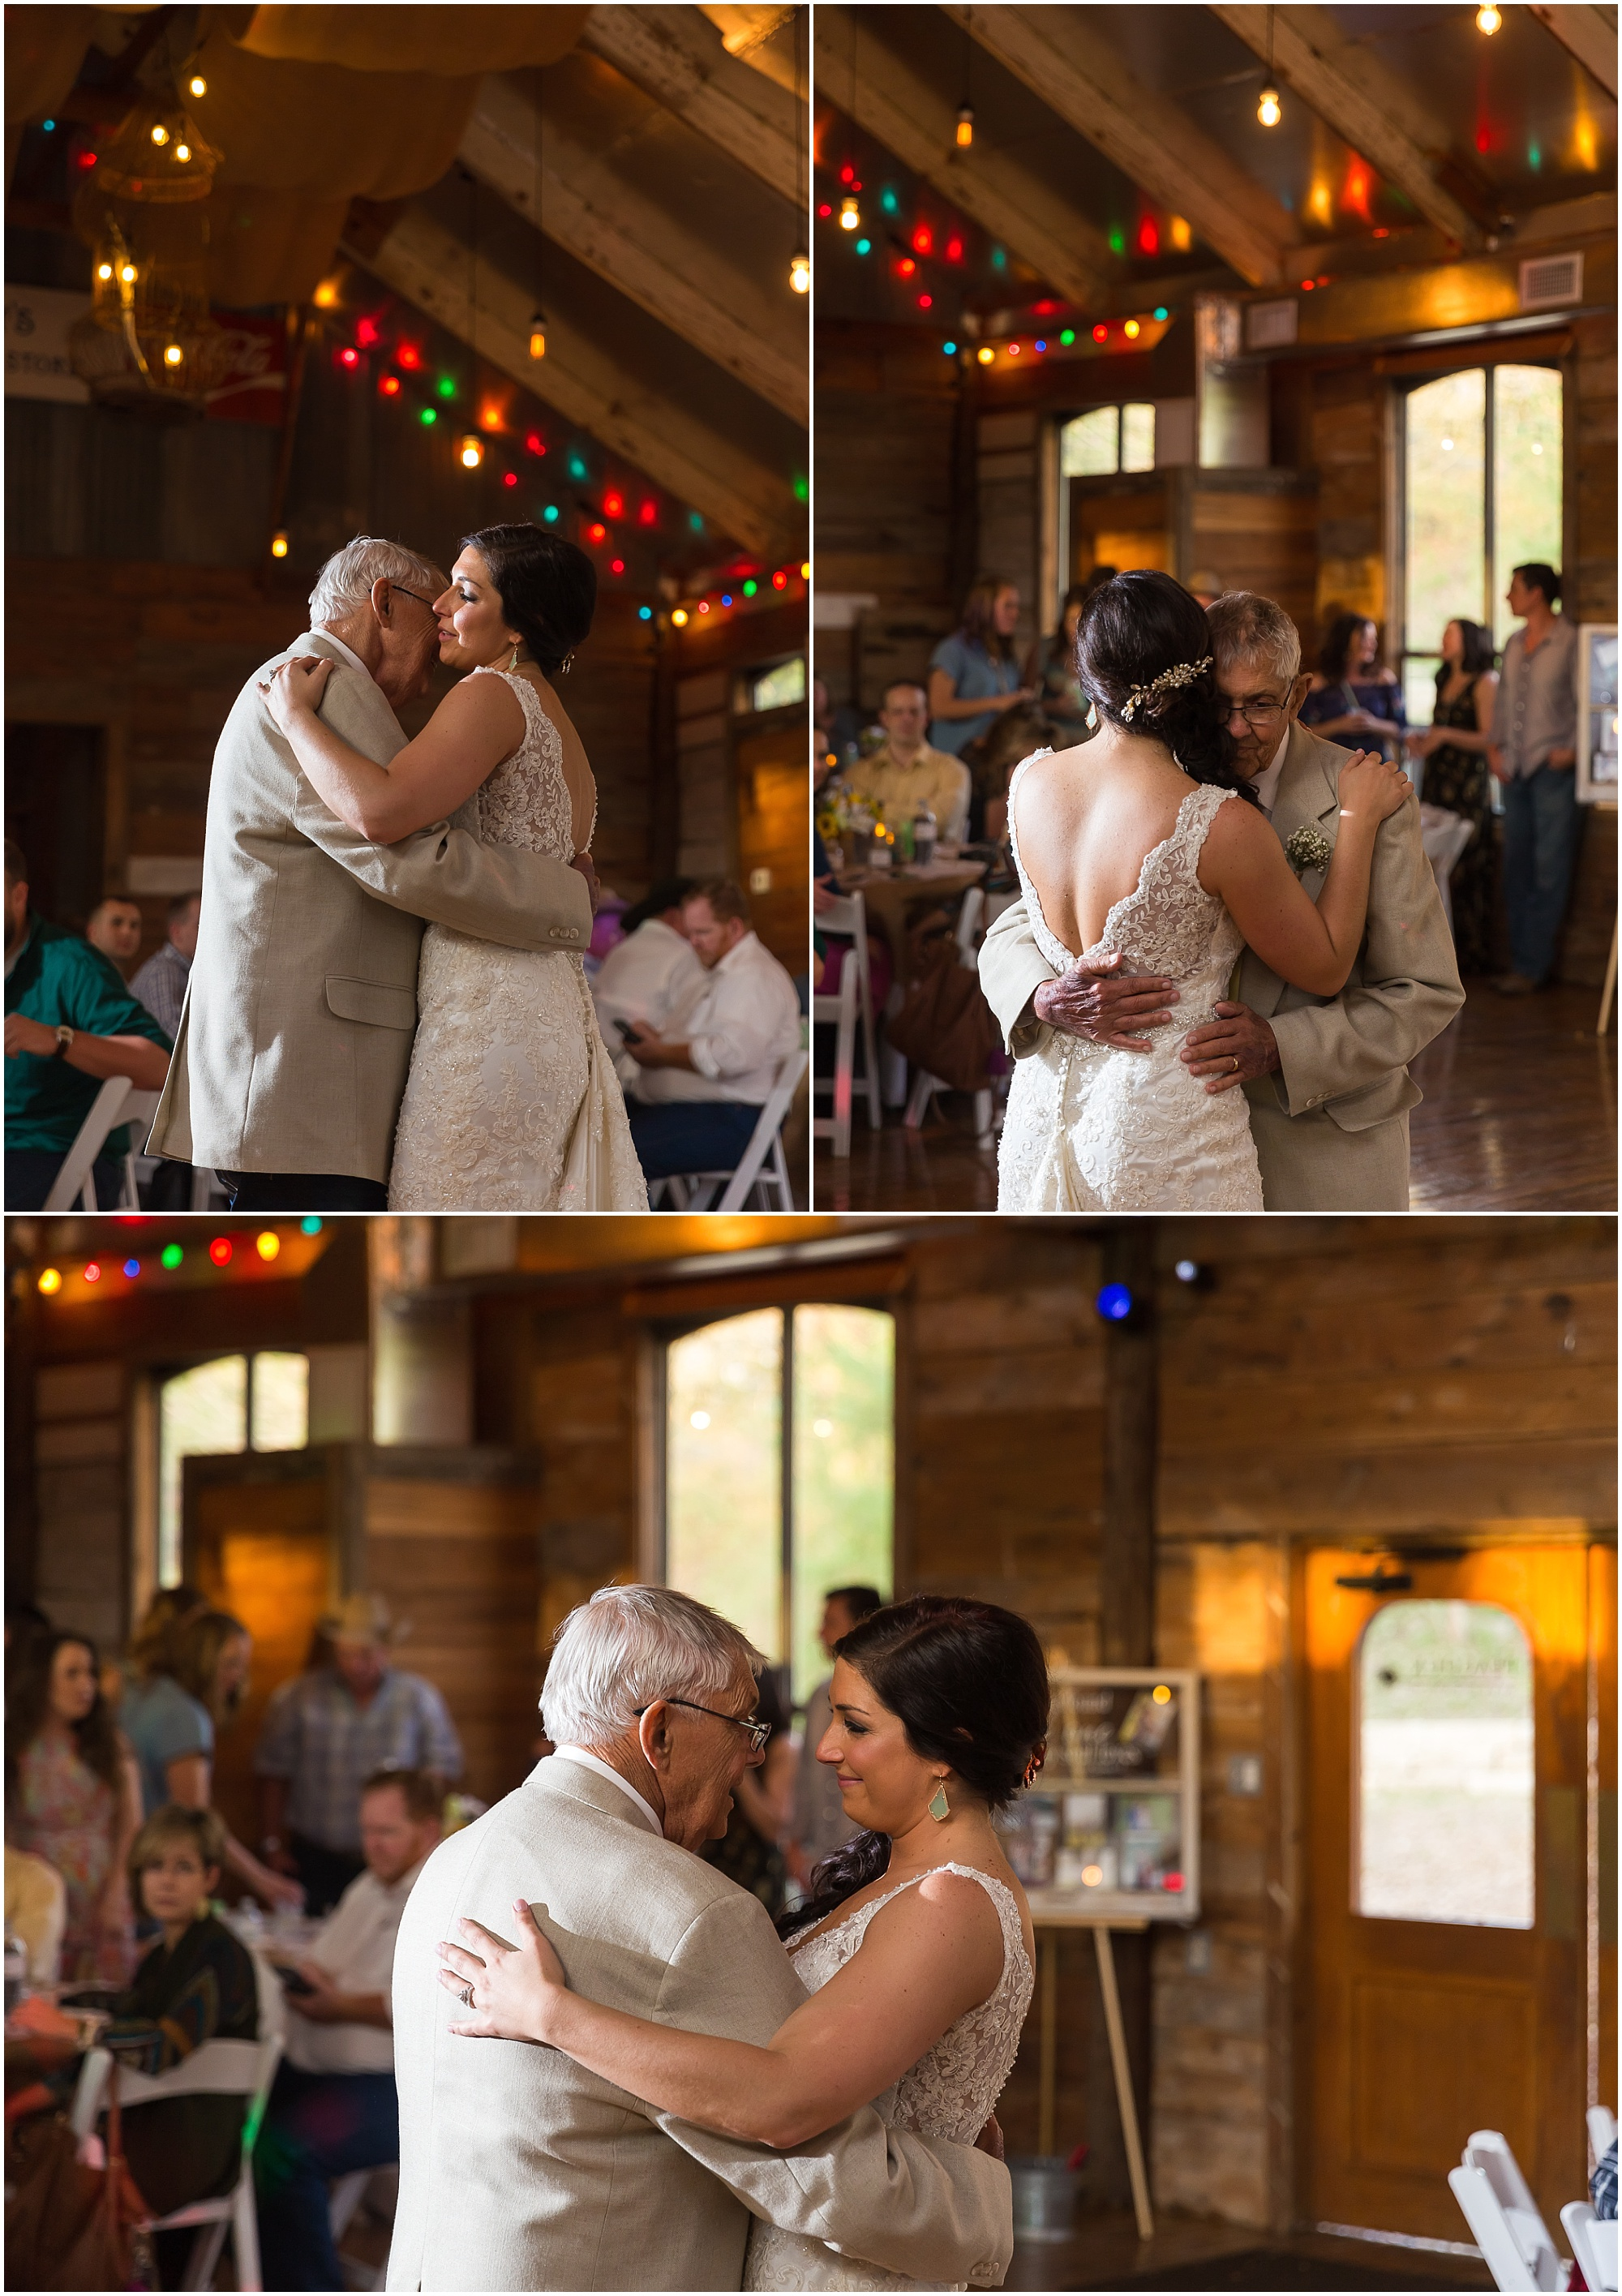 Father dances with his daughter on her wedding day - Peacock River Ranch - Gatesville TX - Jason & Melaina Photography